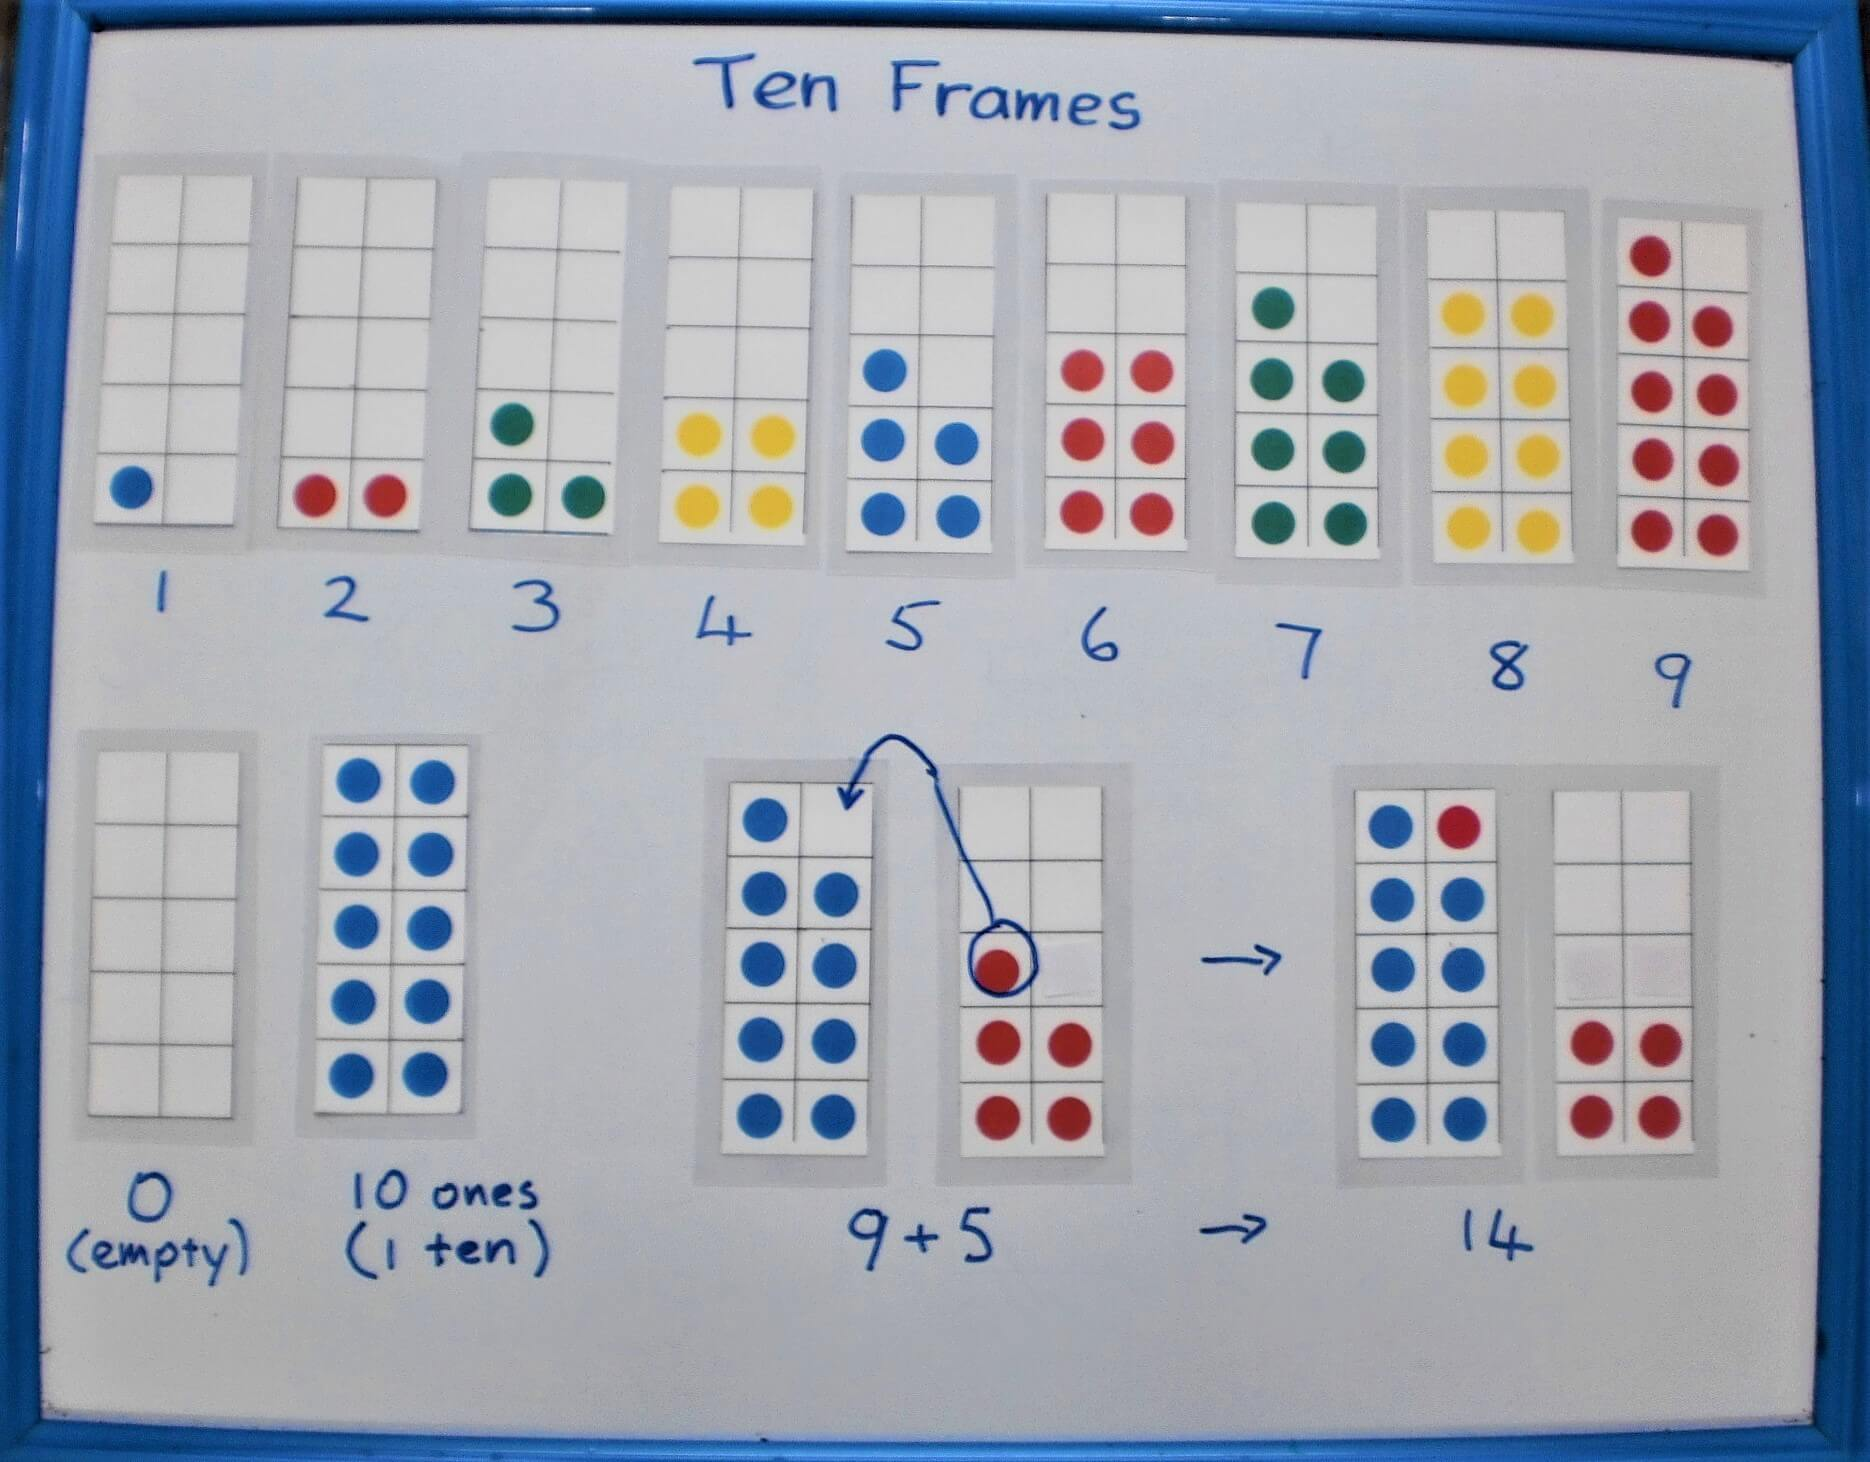 Counters placed on Ten Frames illustrate numbers from 1 - 9.